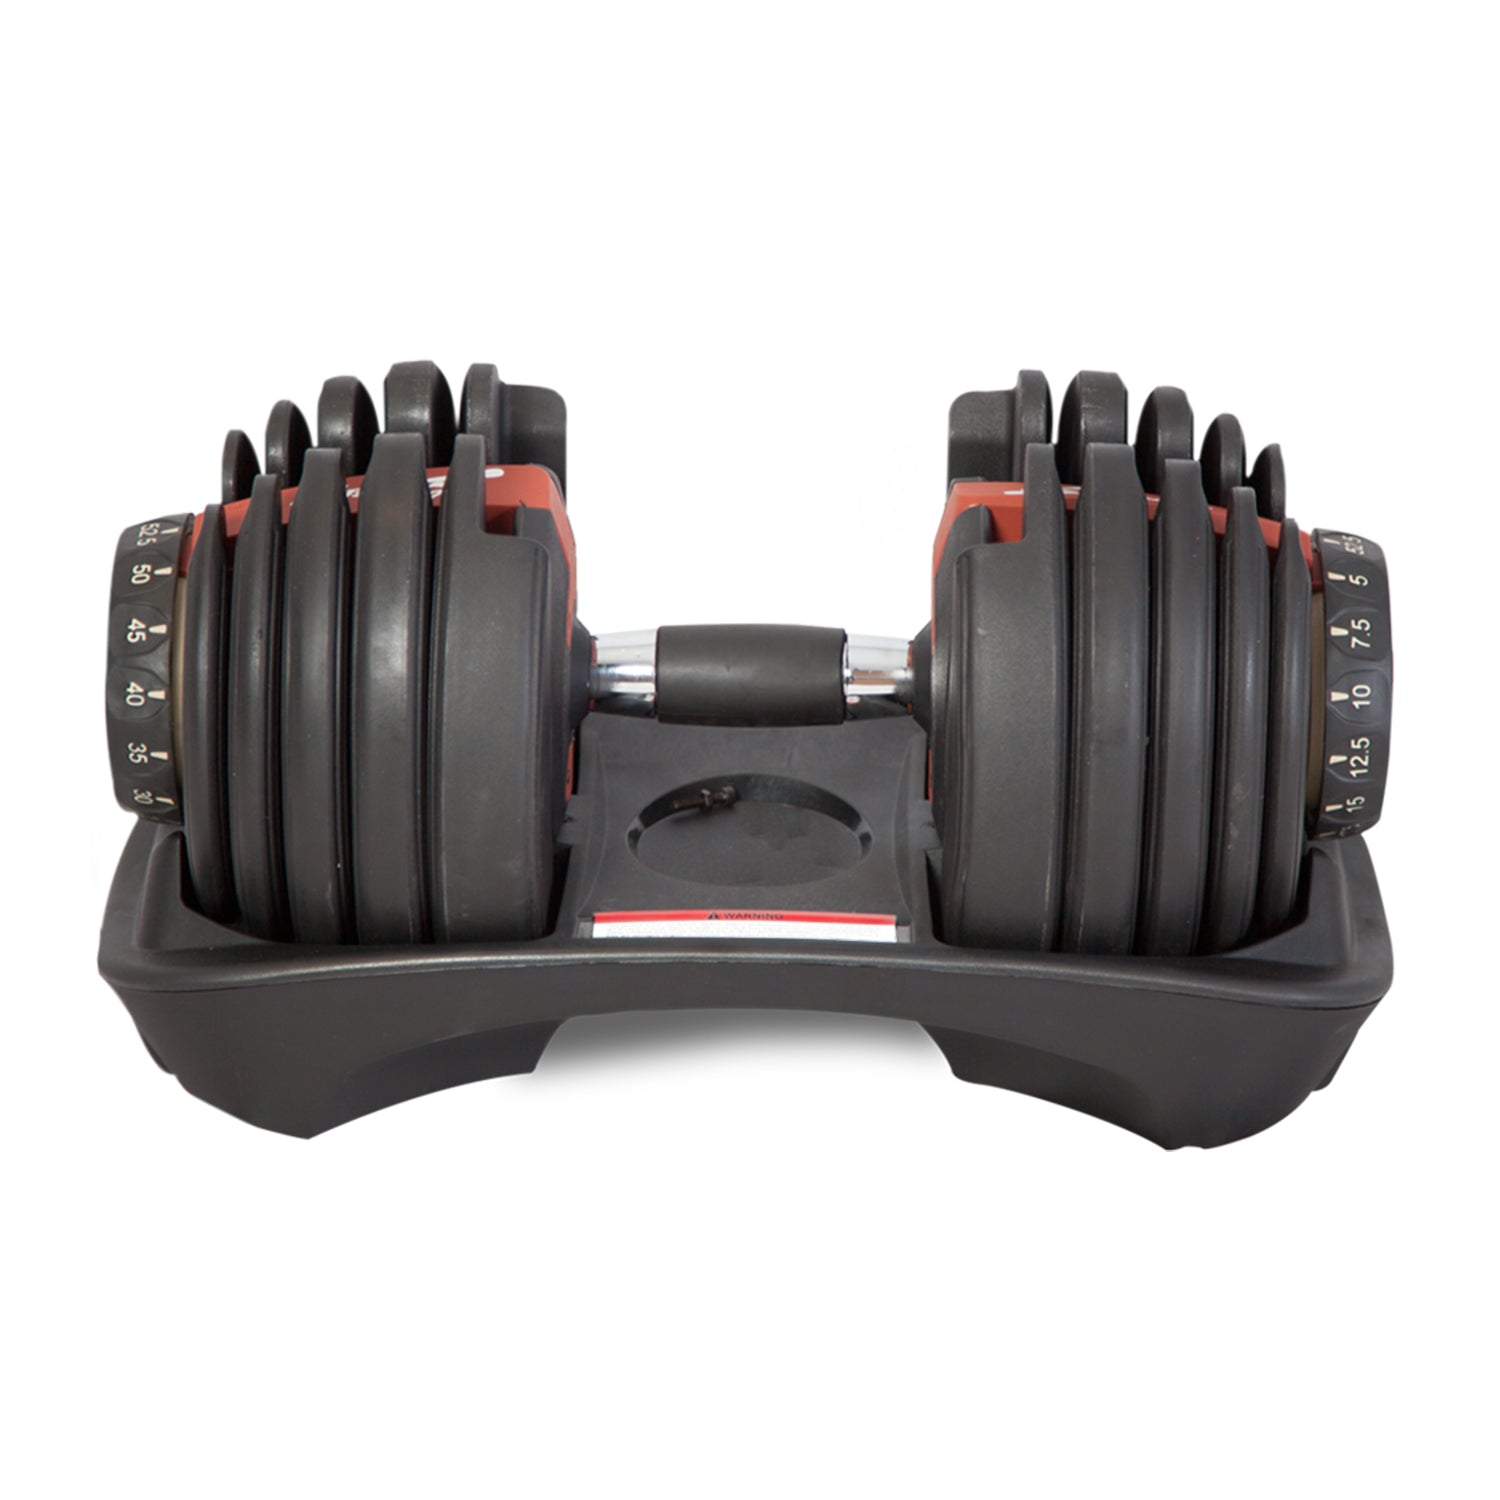 Adjustable Dumbbell 52.5lbs (1x Dumbbell Only)